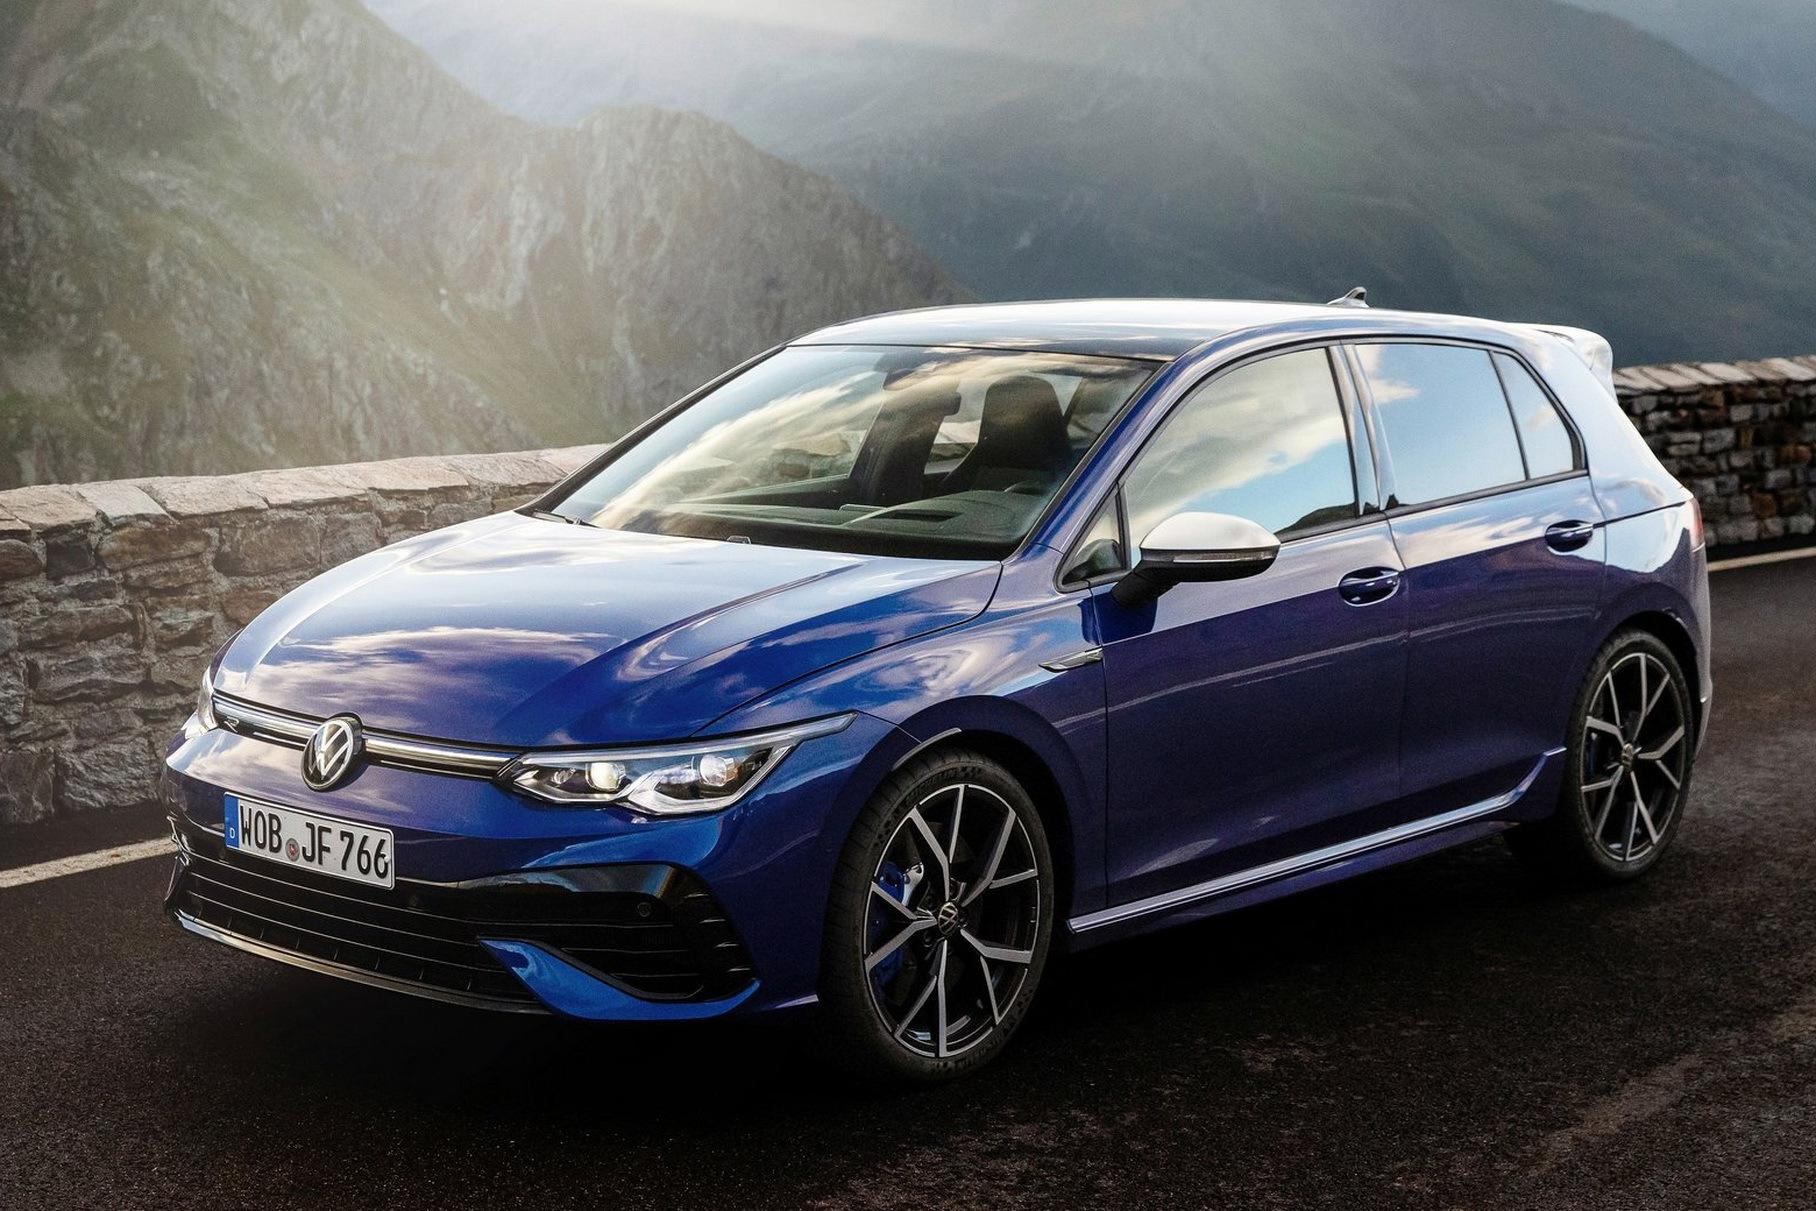 VW reveals the 2022 Golf R, the most powerful Golf ever